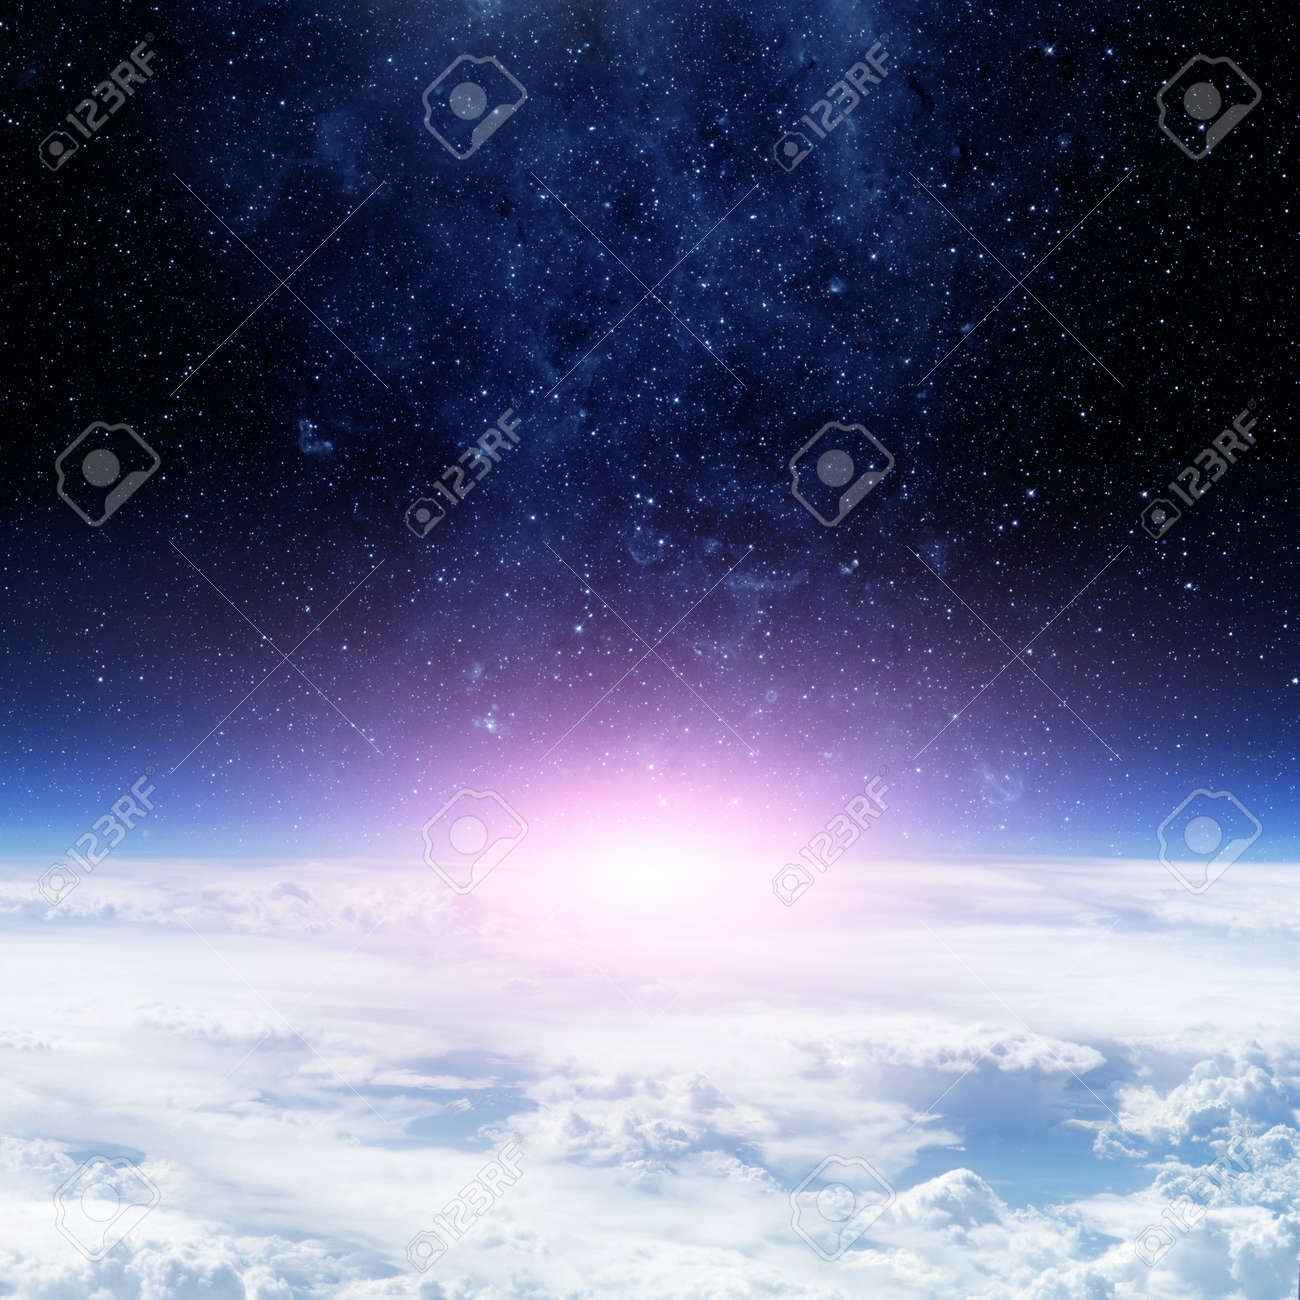 Clouds of Earth planet and star sky on the background. - 50879265